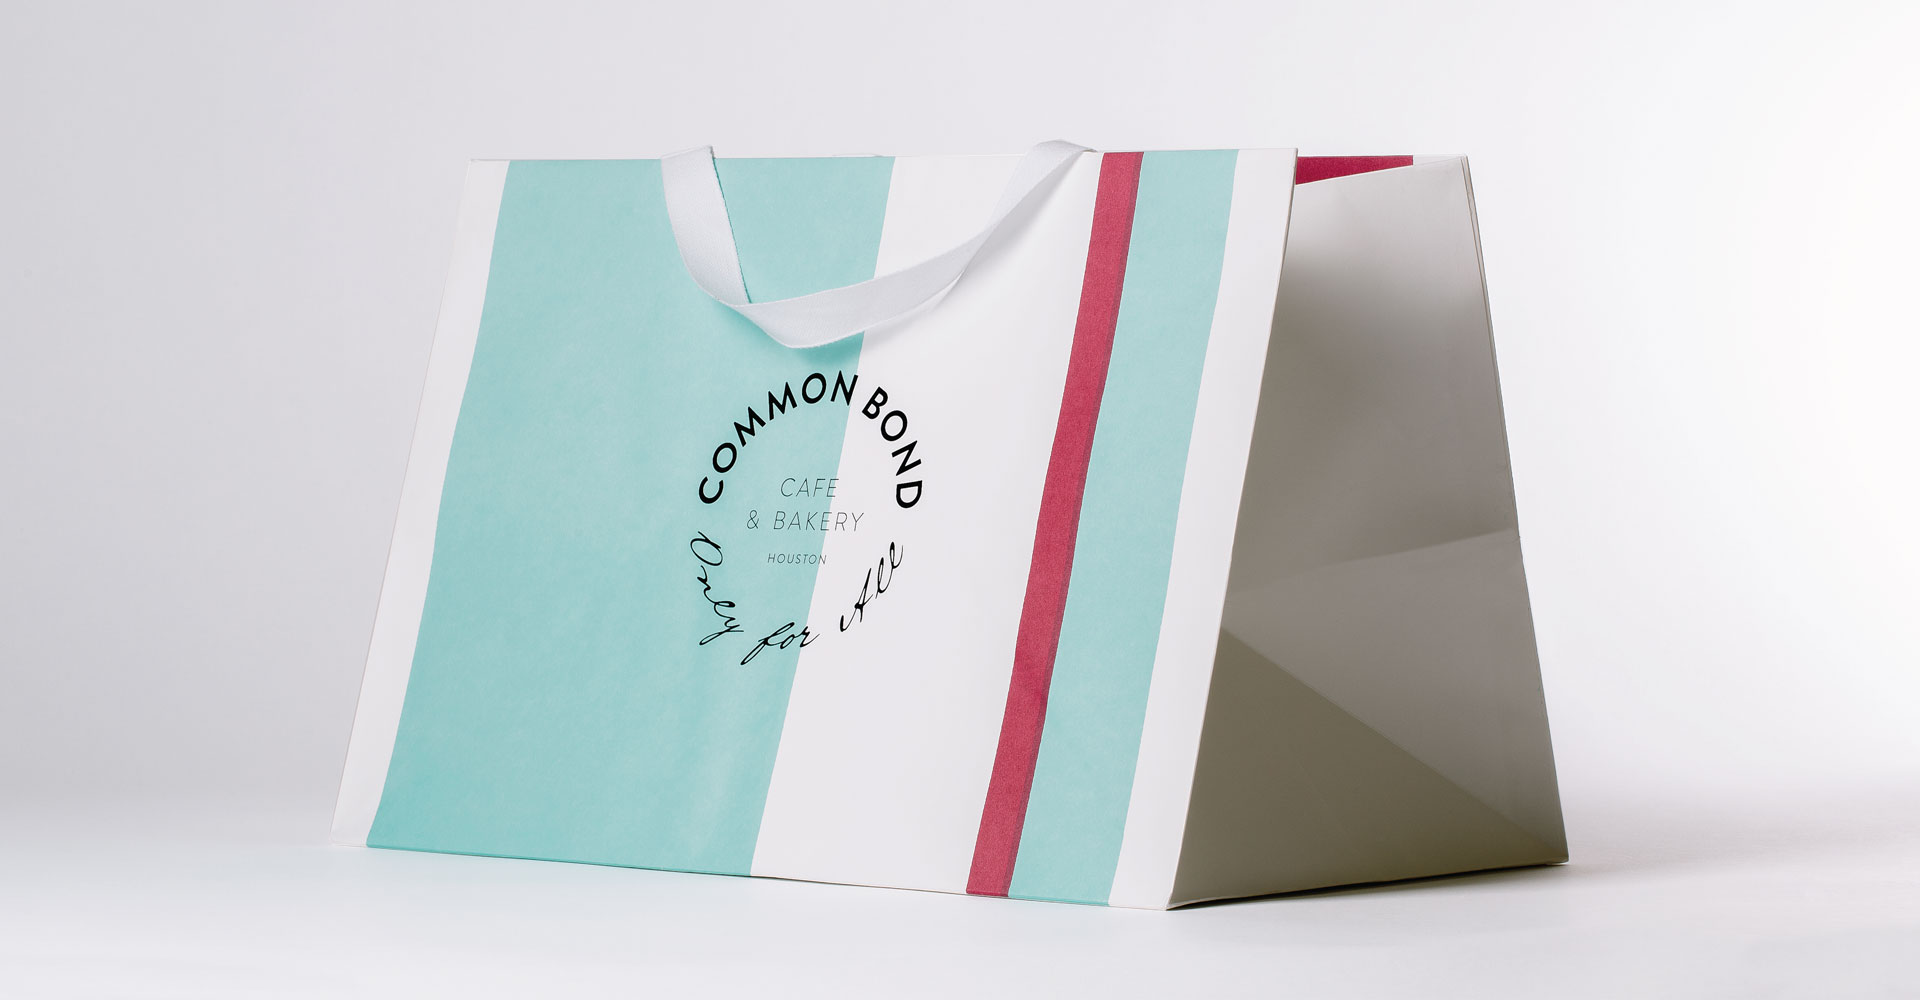 Creative_Retail_Packaging_Package_Design_Common_Bond_04.jpg